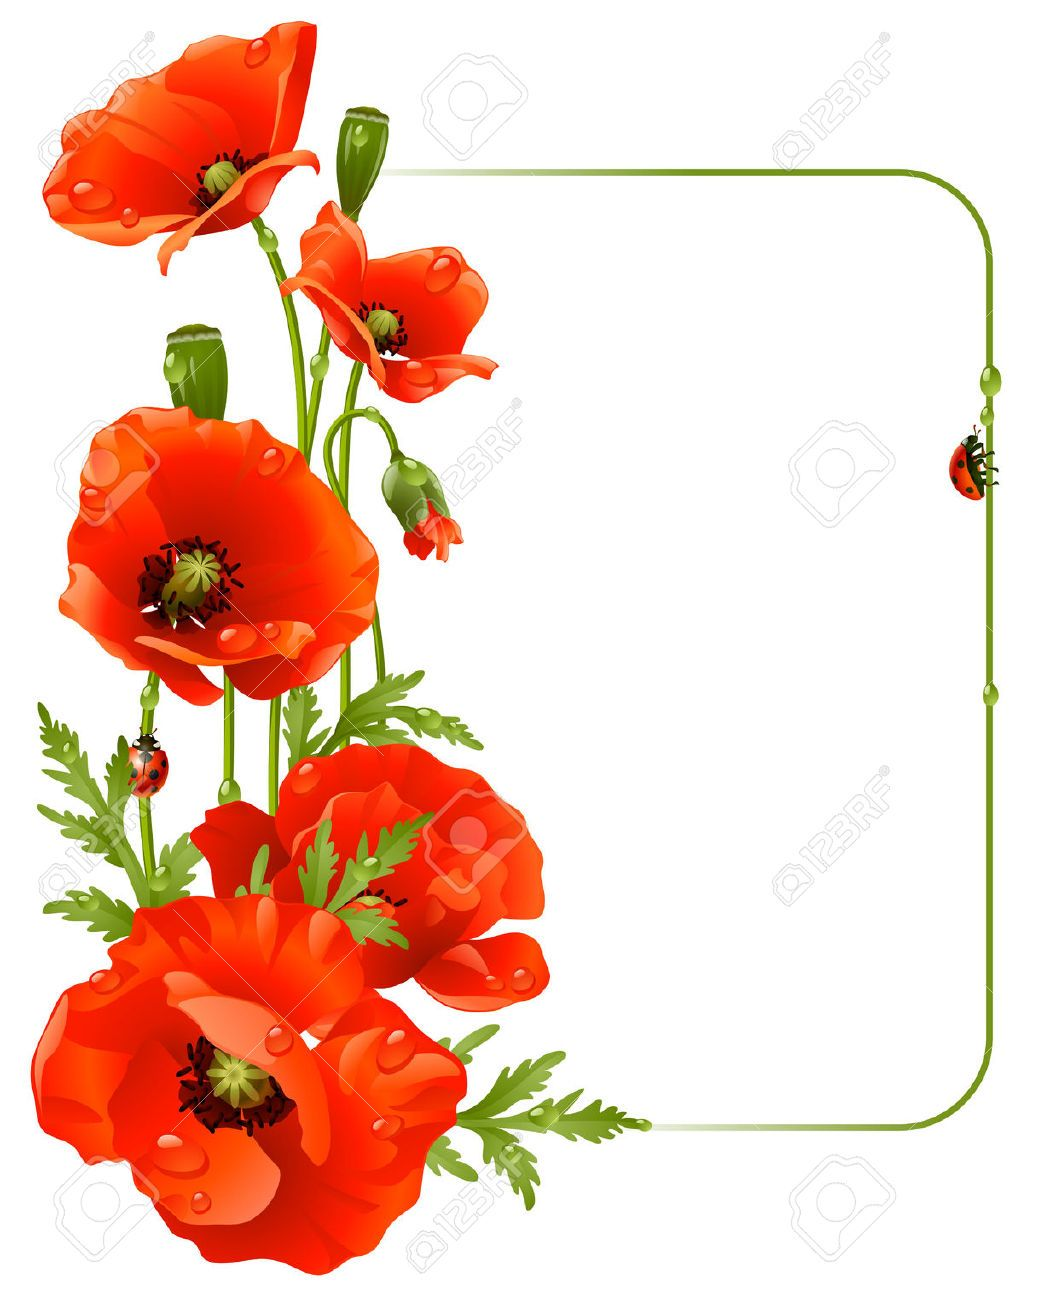 red poppy flower clipart Google Search Use something